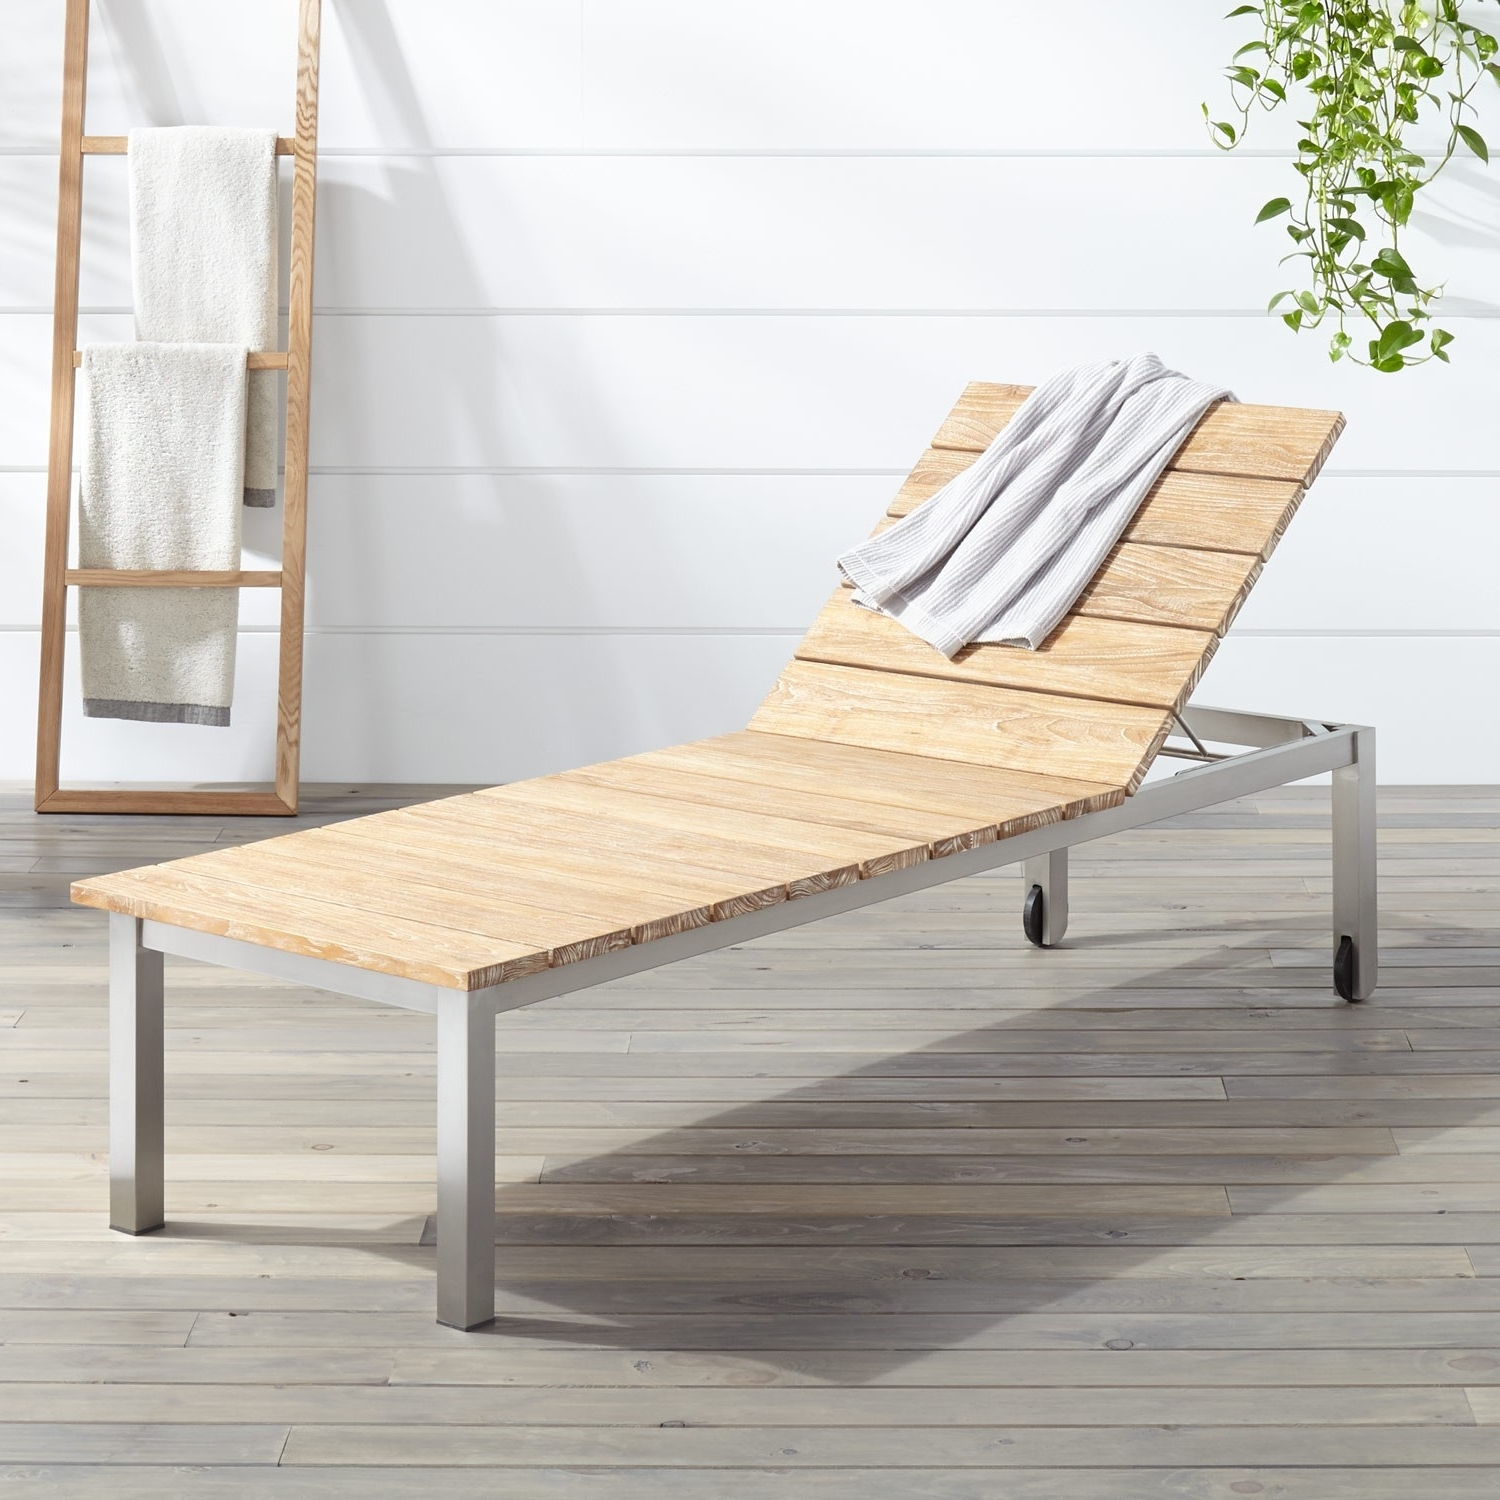 Teak Chaise Lounges With Regard To Trendy Macon Teak Outdoor Chaise Lounge Chair – Whitewash – Outdoor (View 15 of 15)